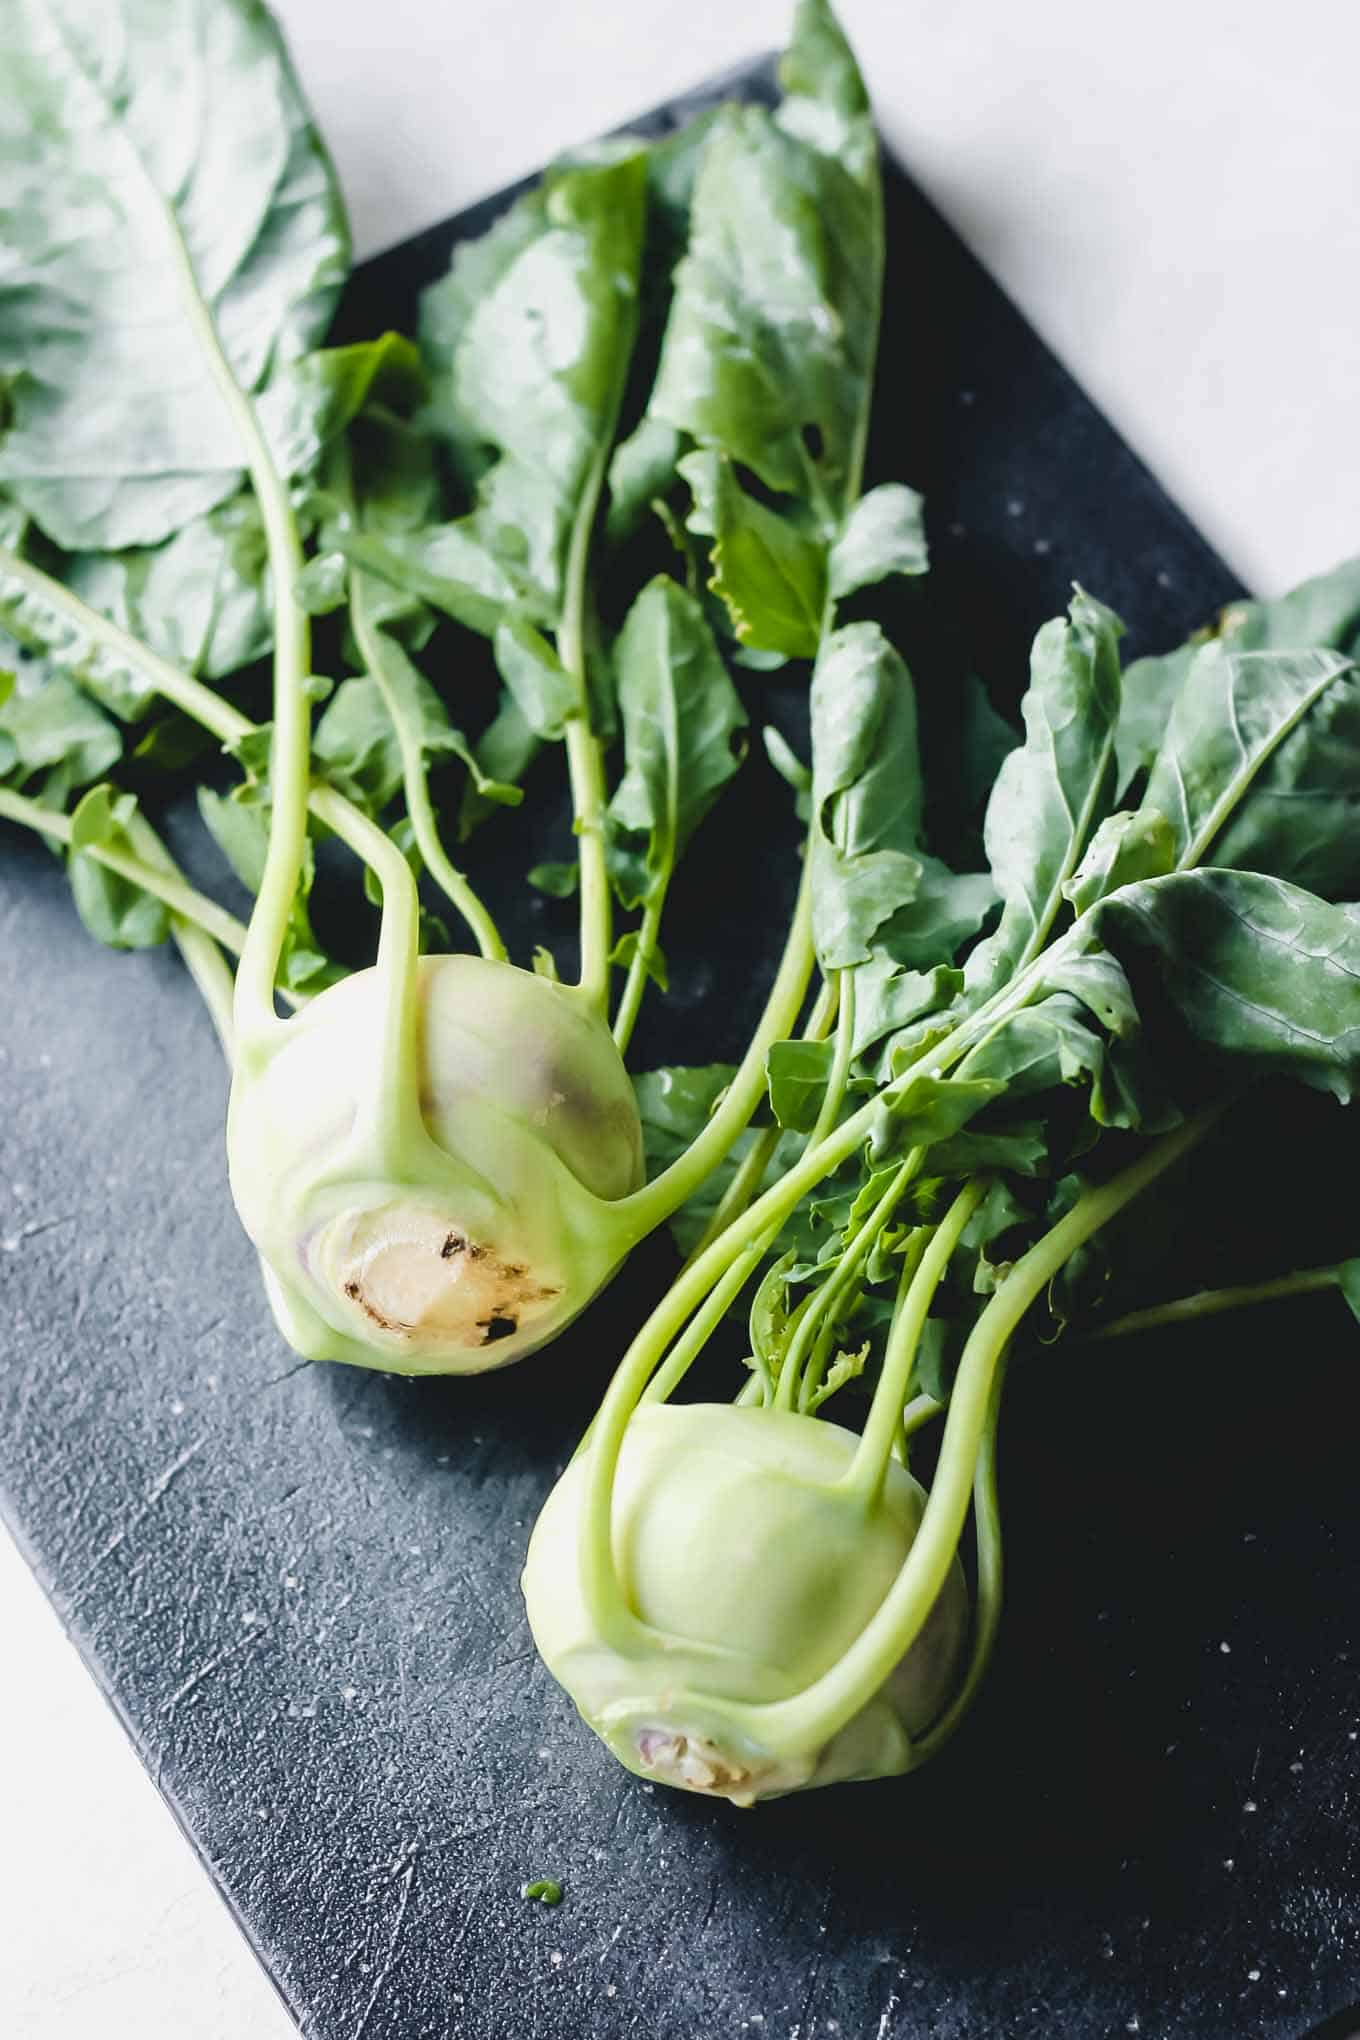 Kohlrabi with stems and leaves on a cutting board